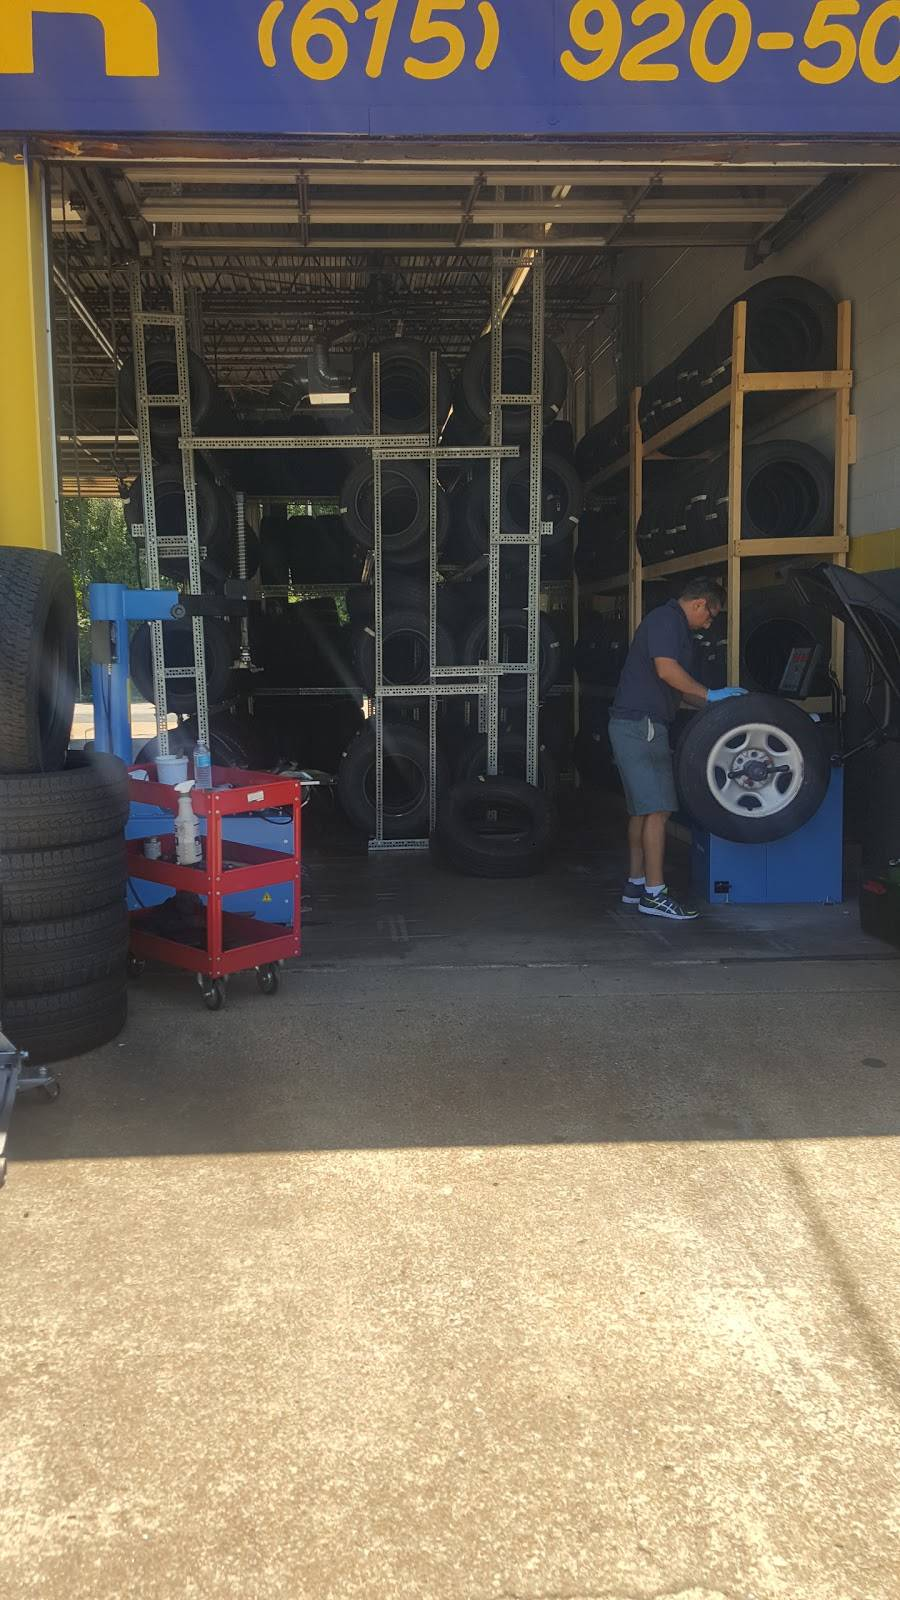 Best deal auto sales and service inc - car repair    Photo 2 of 6   Address: 811 Gallatin Pike S, Madison, TN 37115, USA   Phone: (615) 738-6049